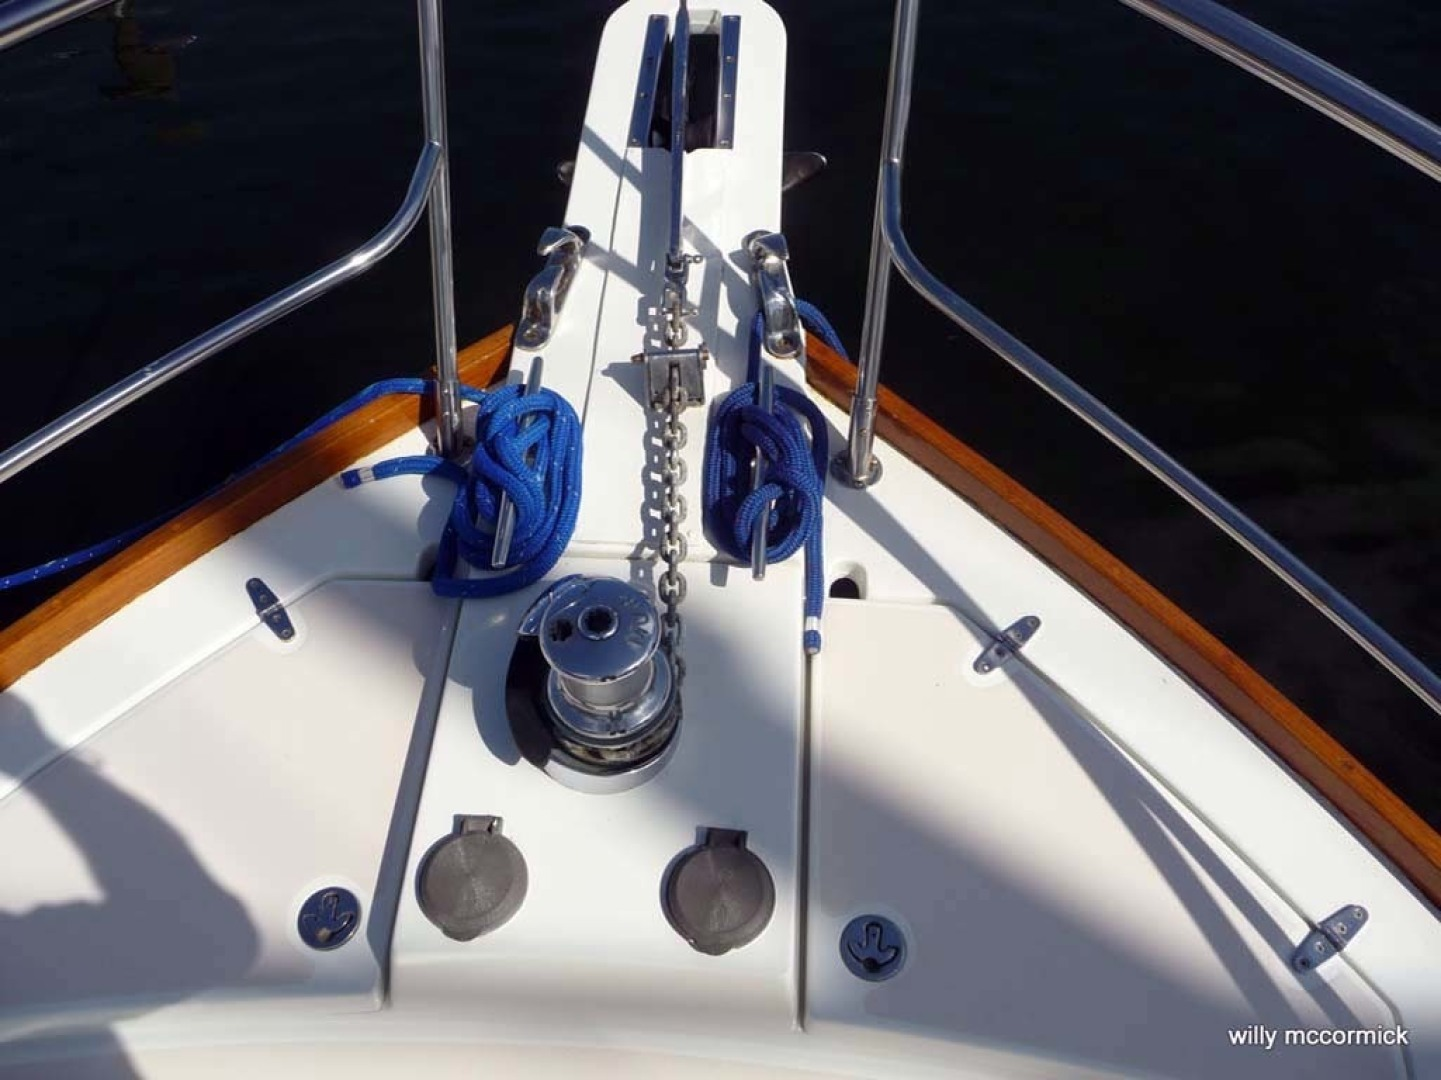 Sabre-36 Express Cruiser 2001-Cause We Can Palm Beach Gardens-Florida-United States-Windlass-1318560 | Thumbnail